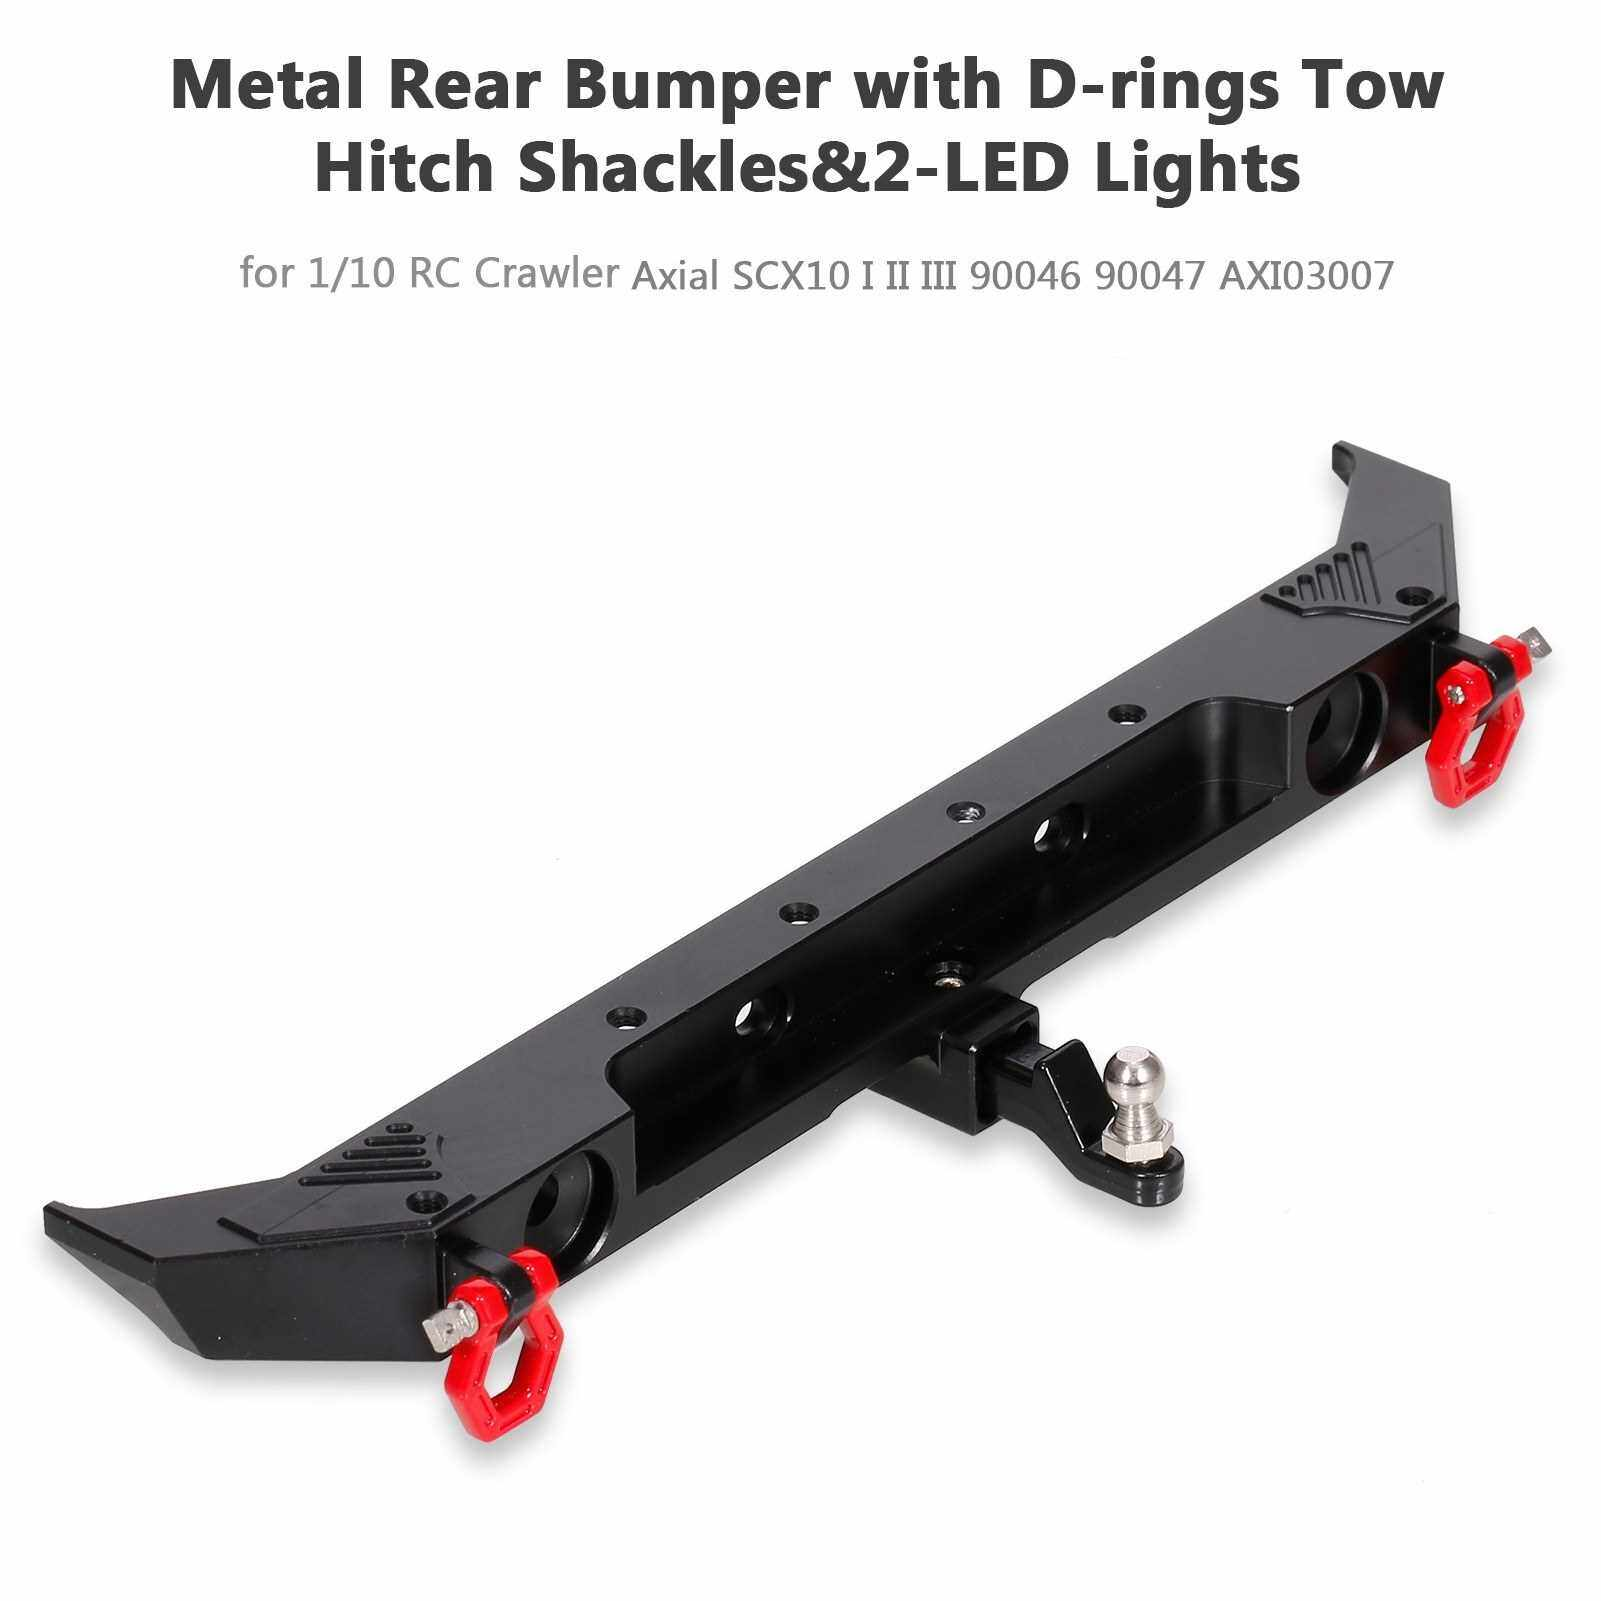 Best Selling 1/10 RC Crawler Car Metal Rear Bumper with D-rings Tow Hitch Shackles&2-LED Lights Compatible with Axial SCX10 I II III 90046 90047 AXI03007 (Standard)